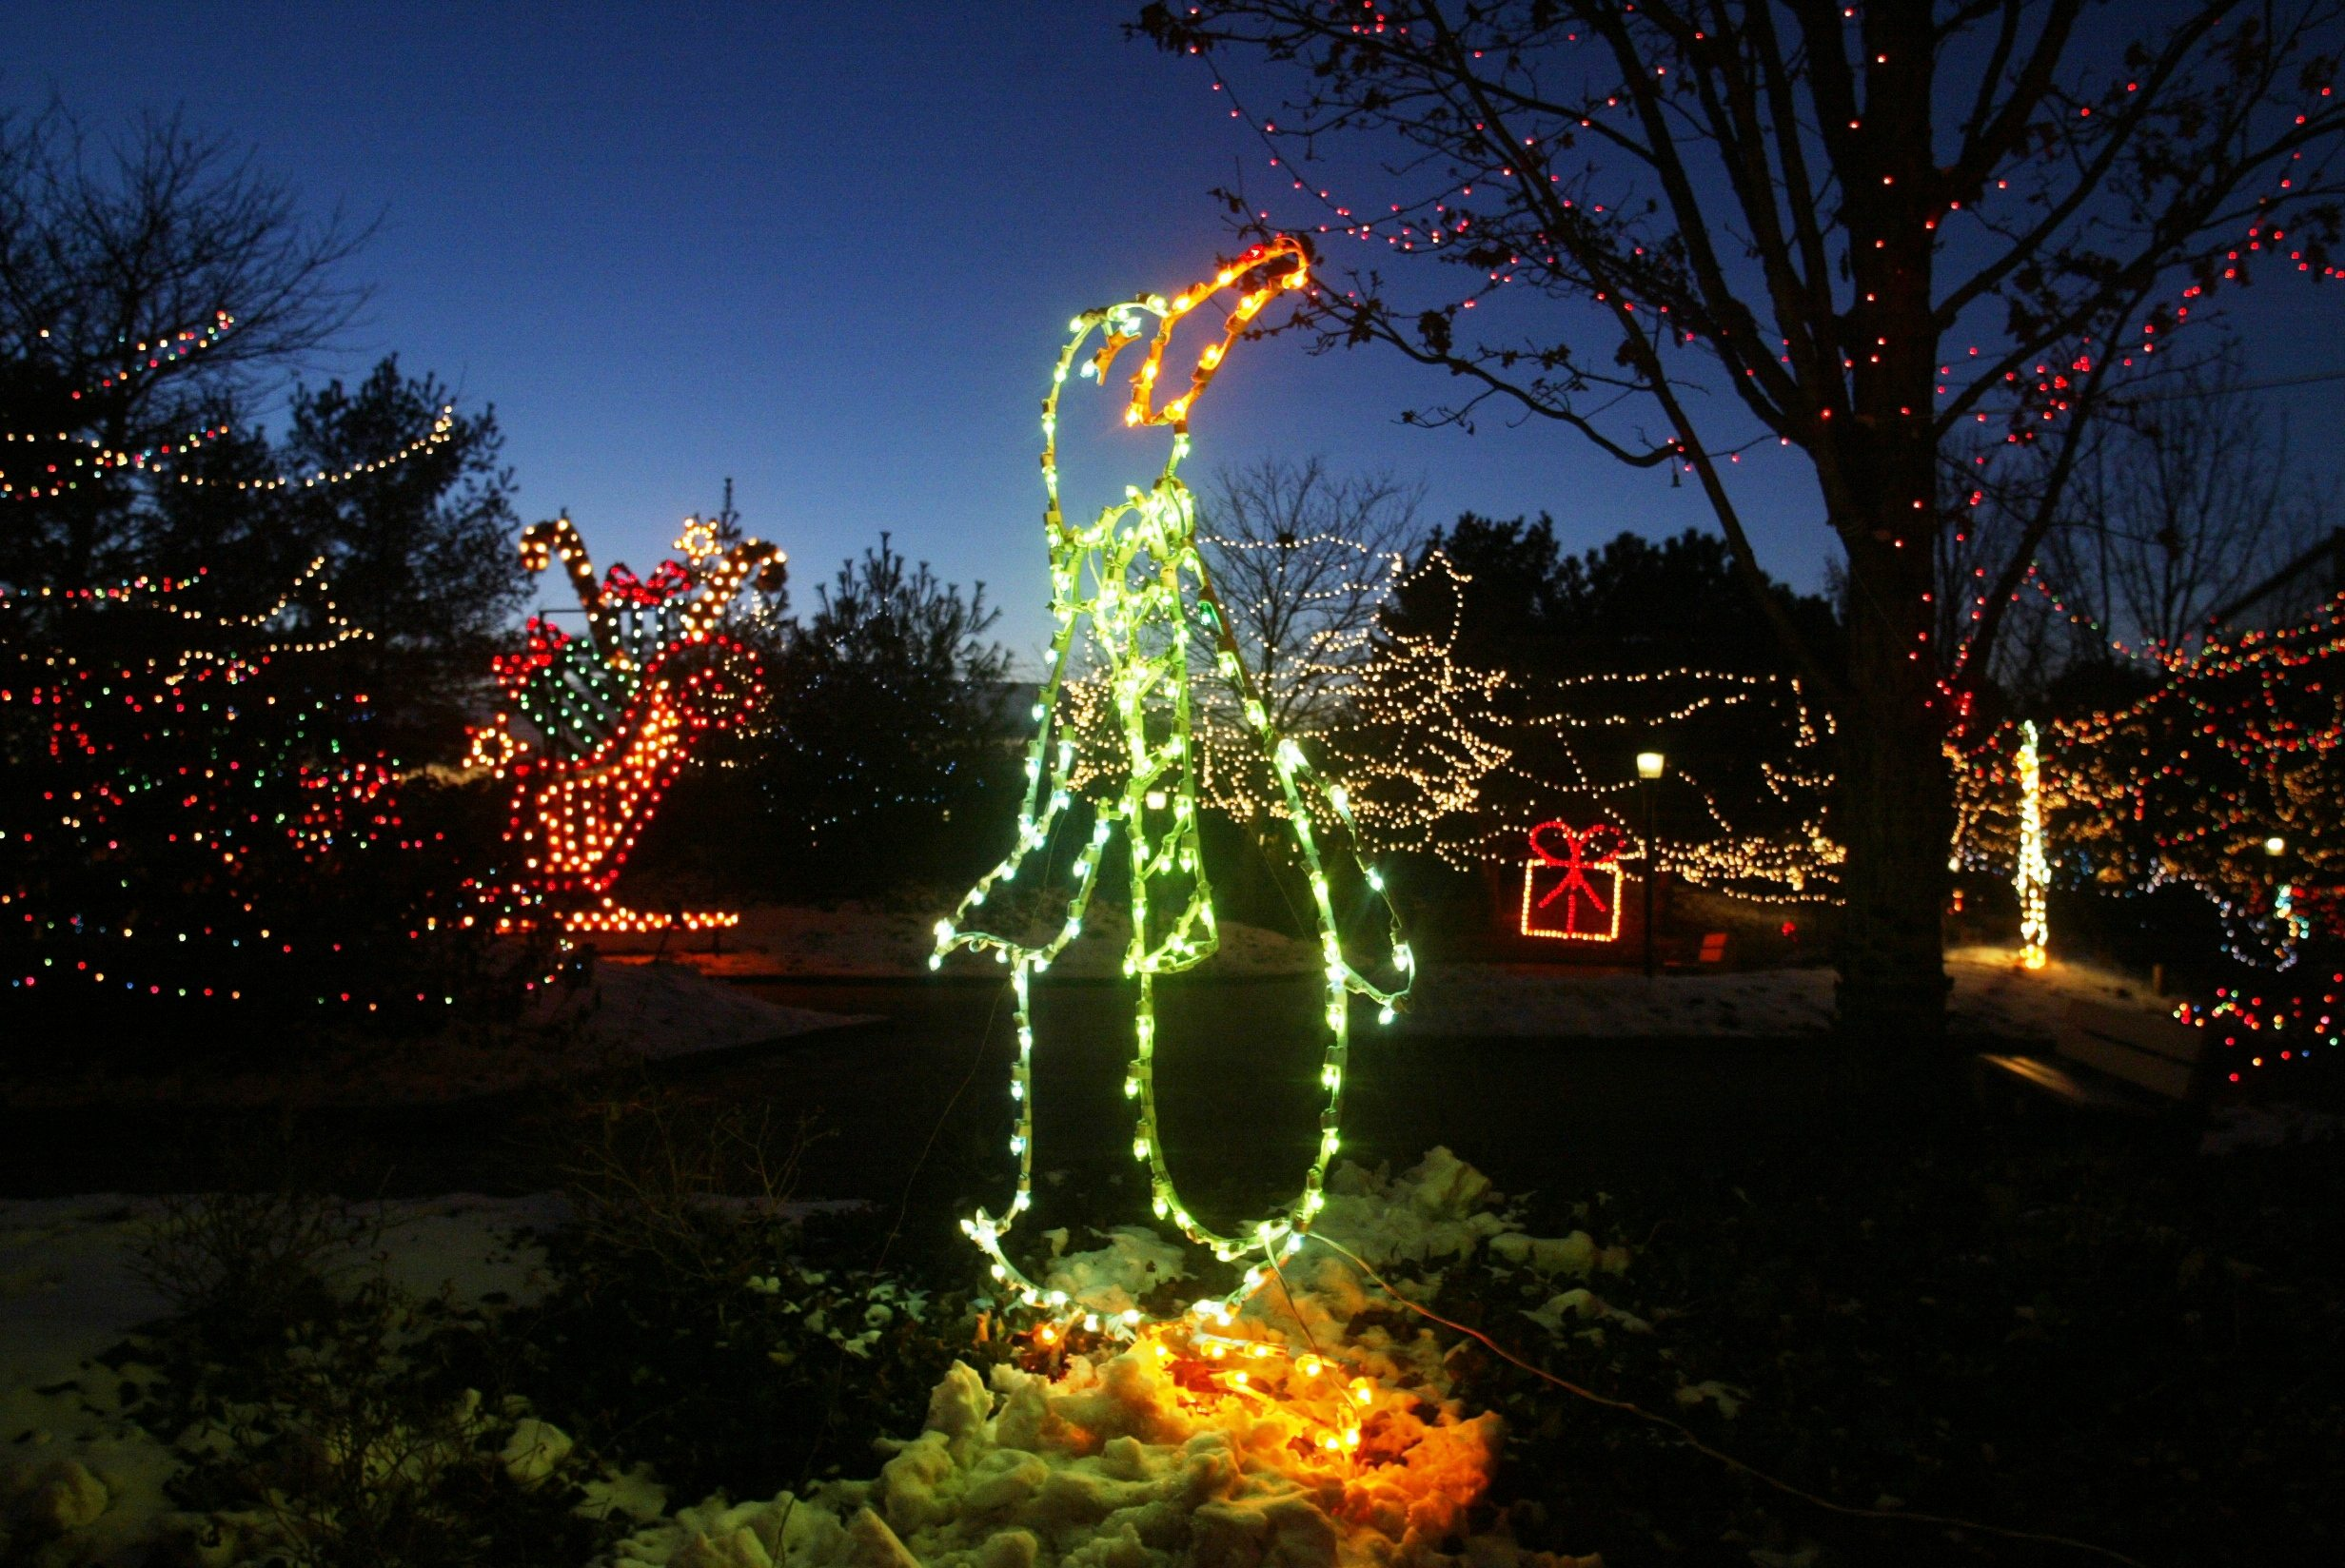 5 Best Spots to view Christmas Lights in Indianapolis | Indy's ...